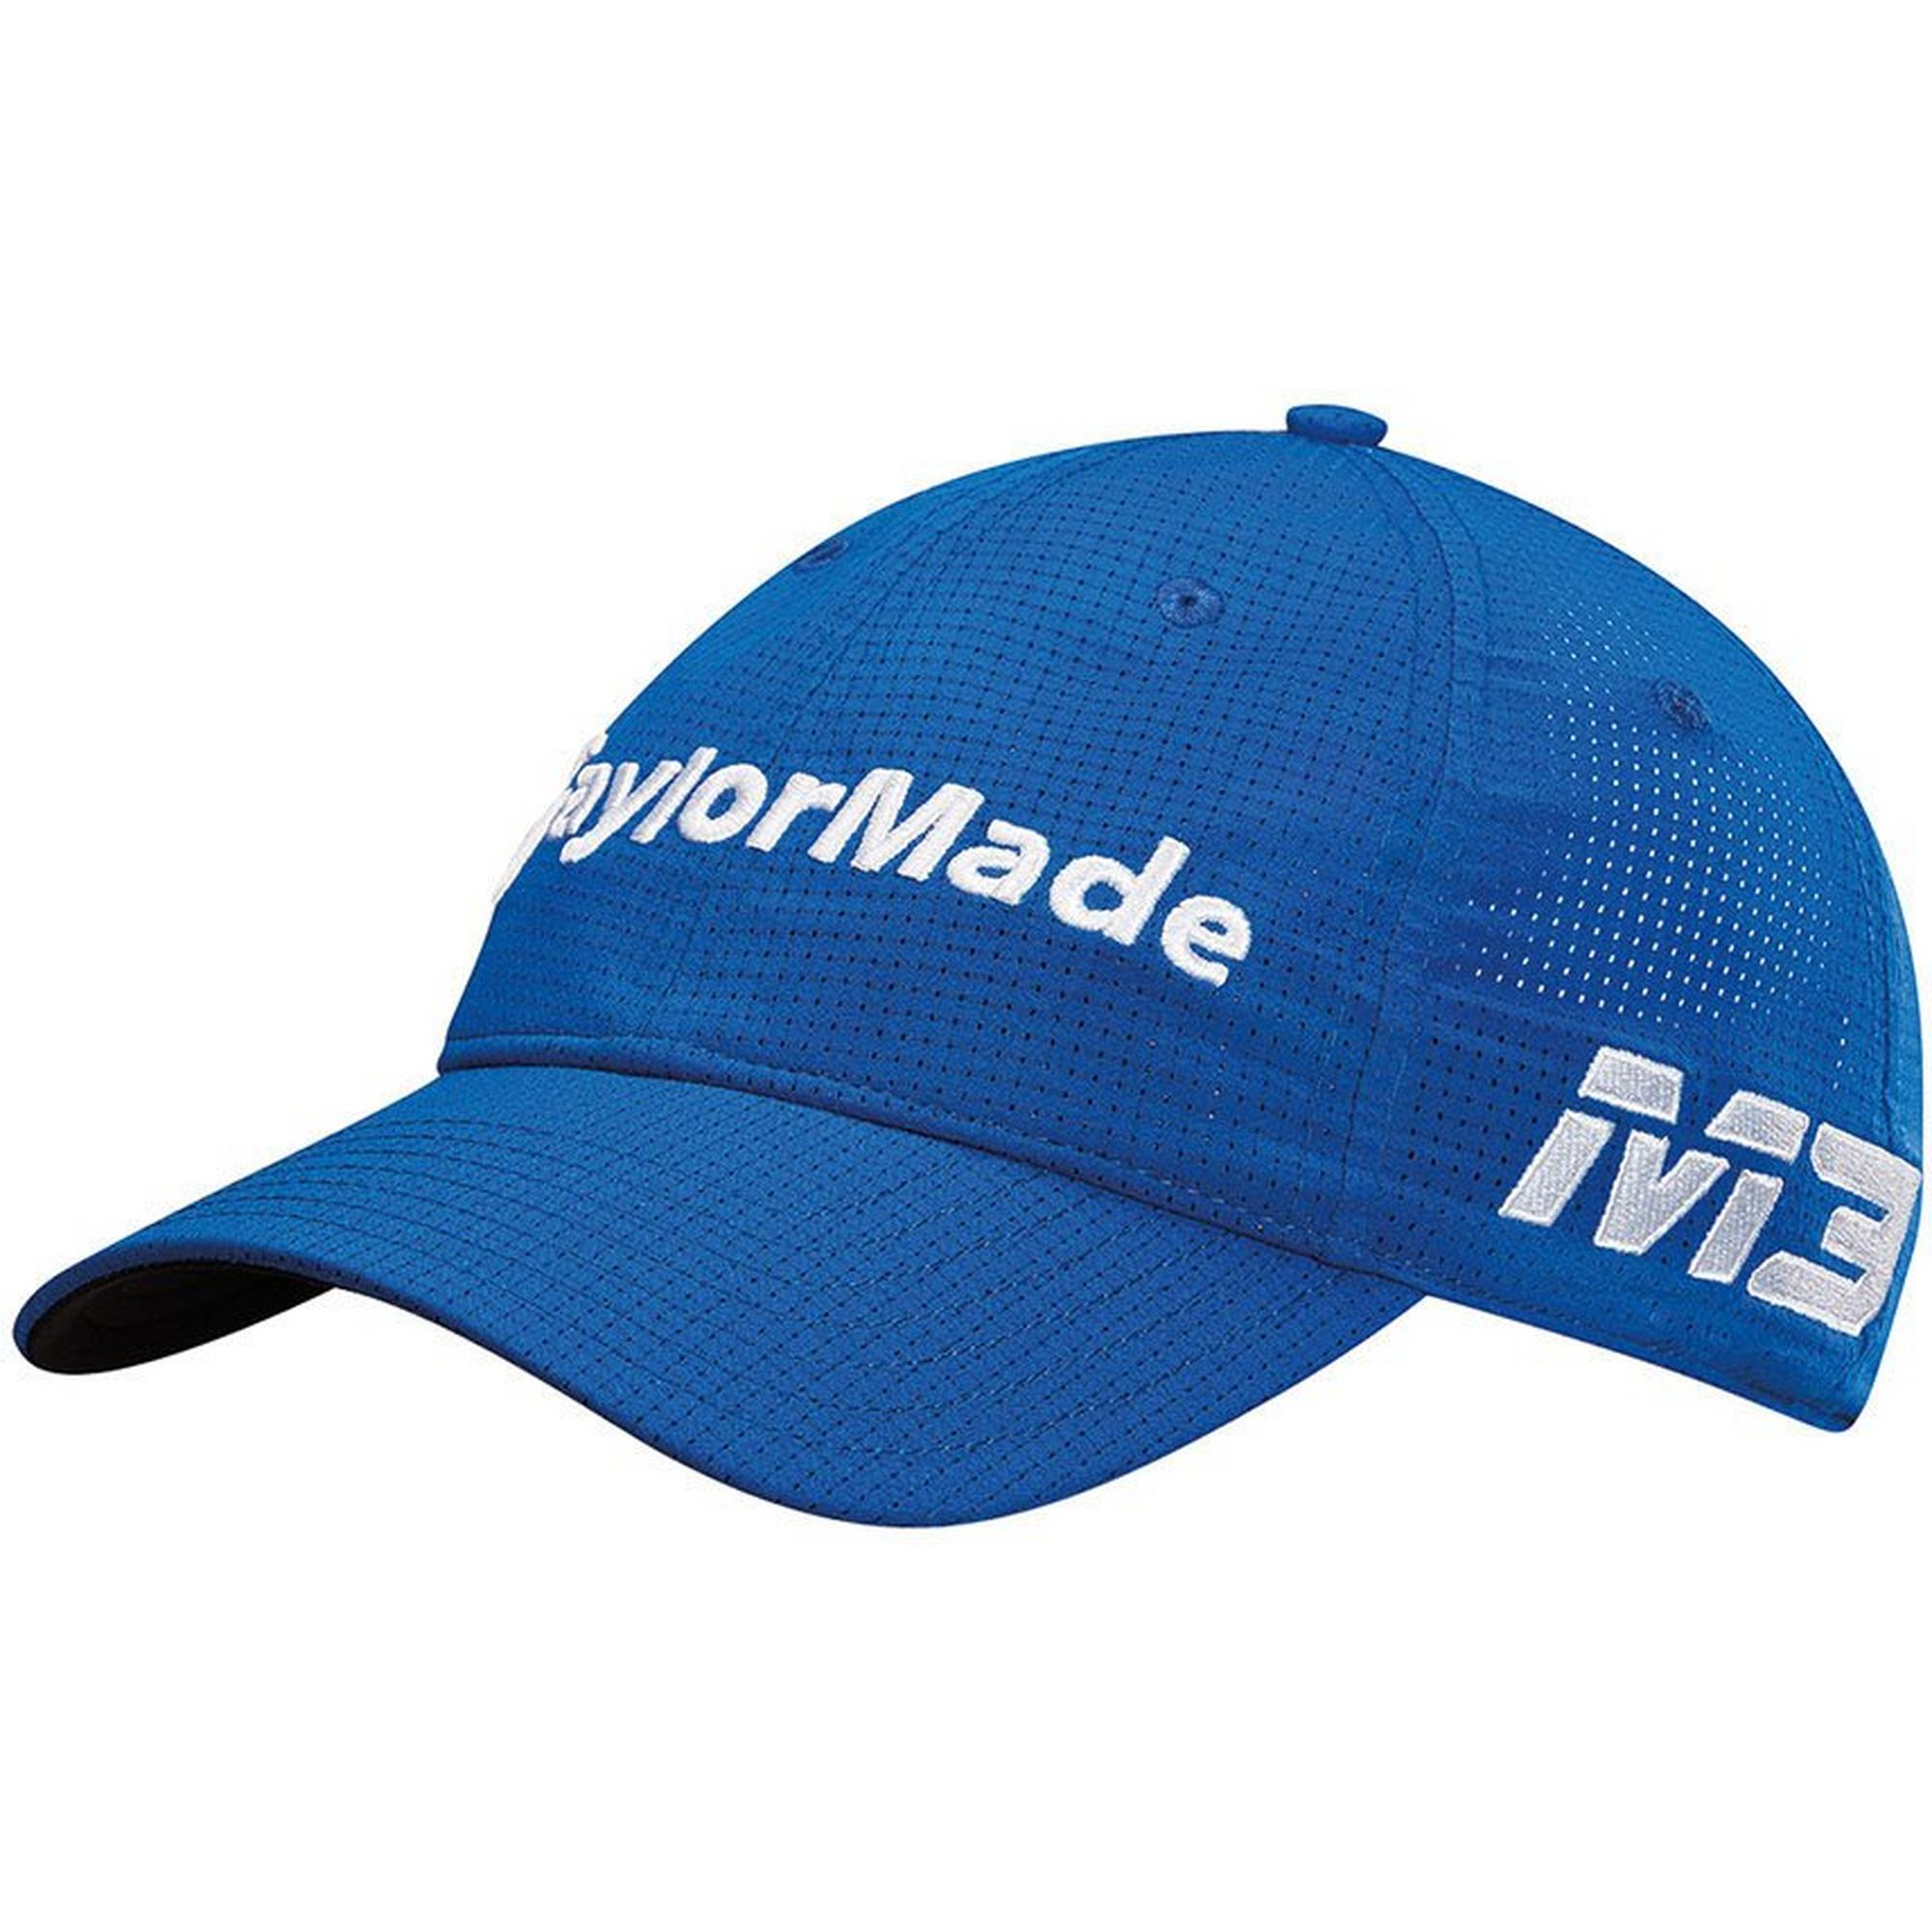 Men's Litetech Tour Cap